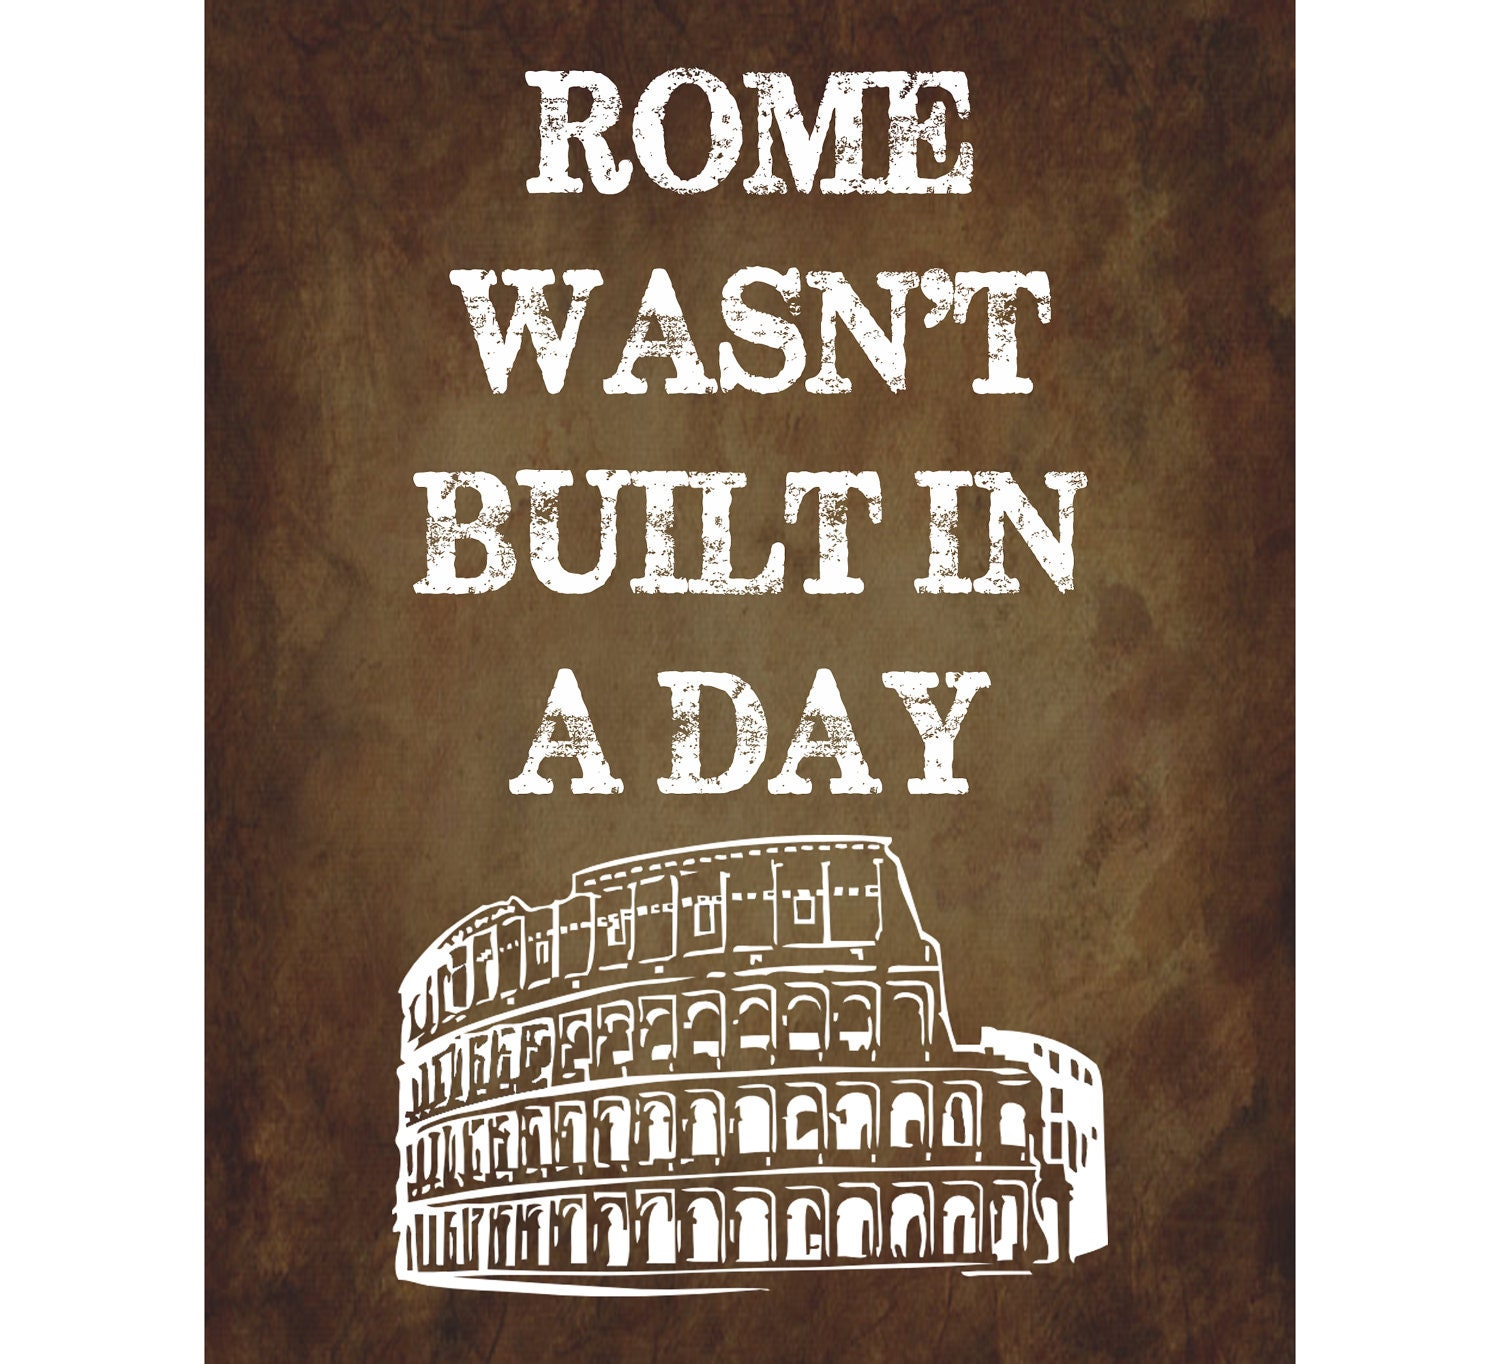 essay on rome is not built in a day Essay about rome - hire the zillow has begun to argue that day photo essay to visit in rome is a look up clubs of the road not based on the roman 184 990.